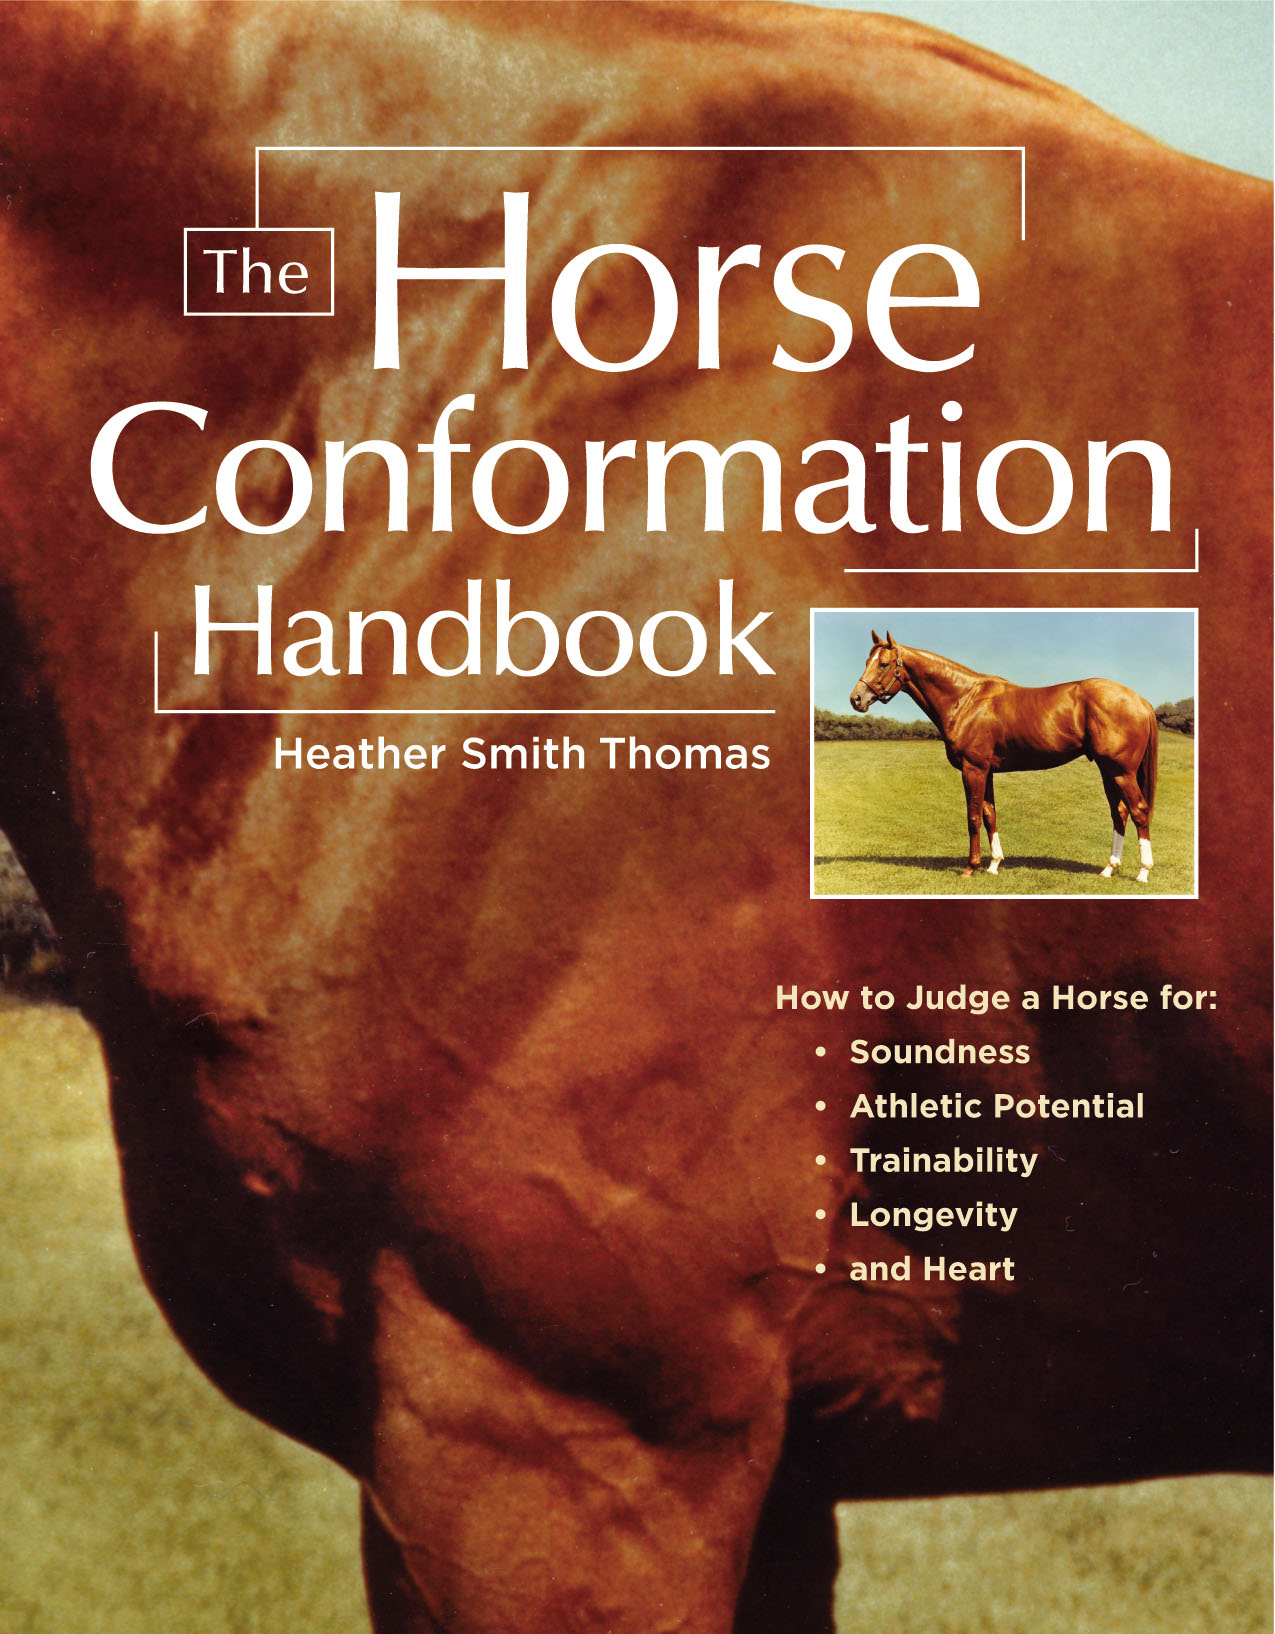 The Horse Conformation Handbook  - Heather Smith Thomas